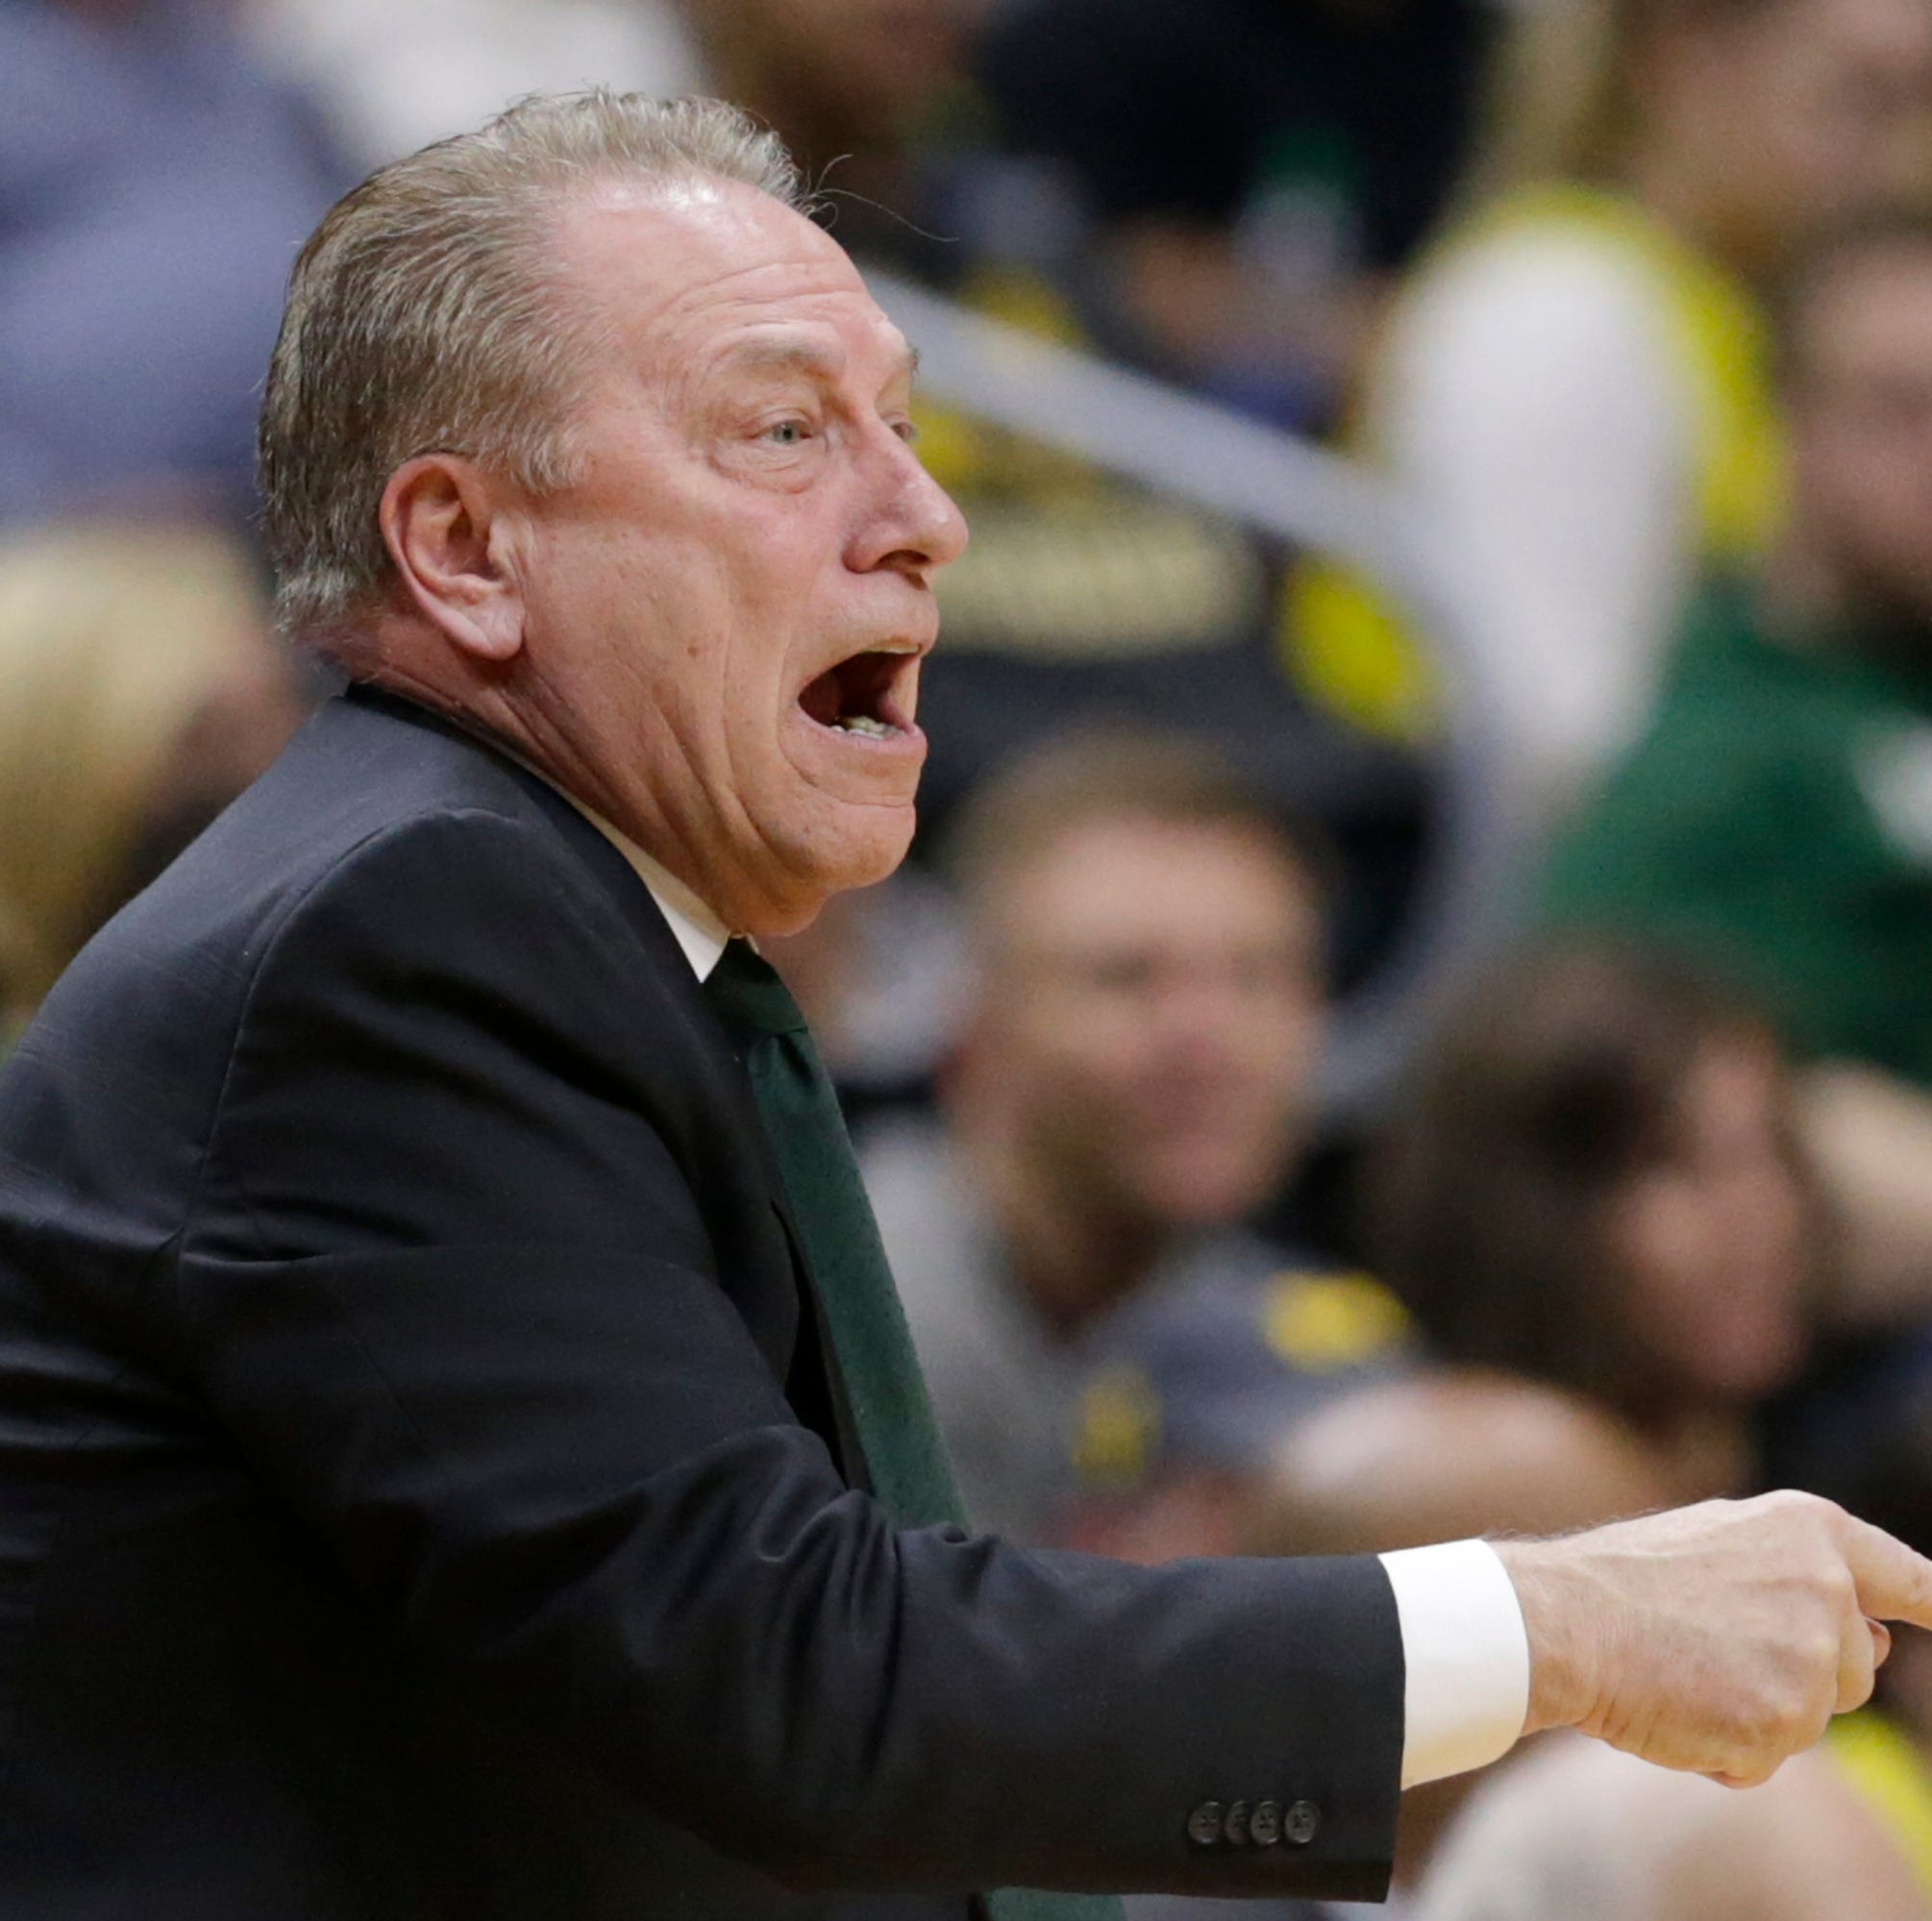 York-Adams coaches, players weigh in on controversial video of Tom Izzo yelling at player